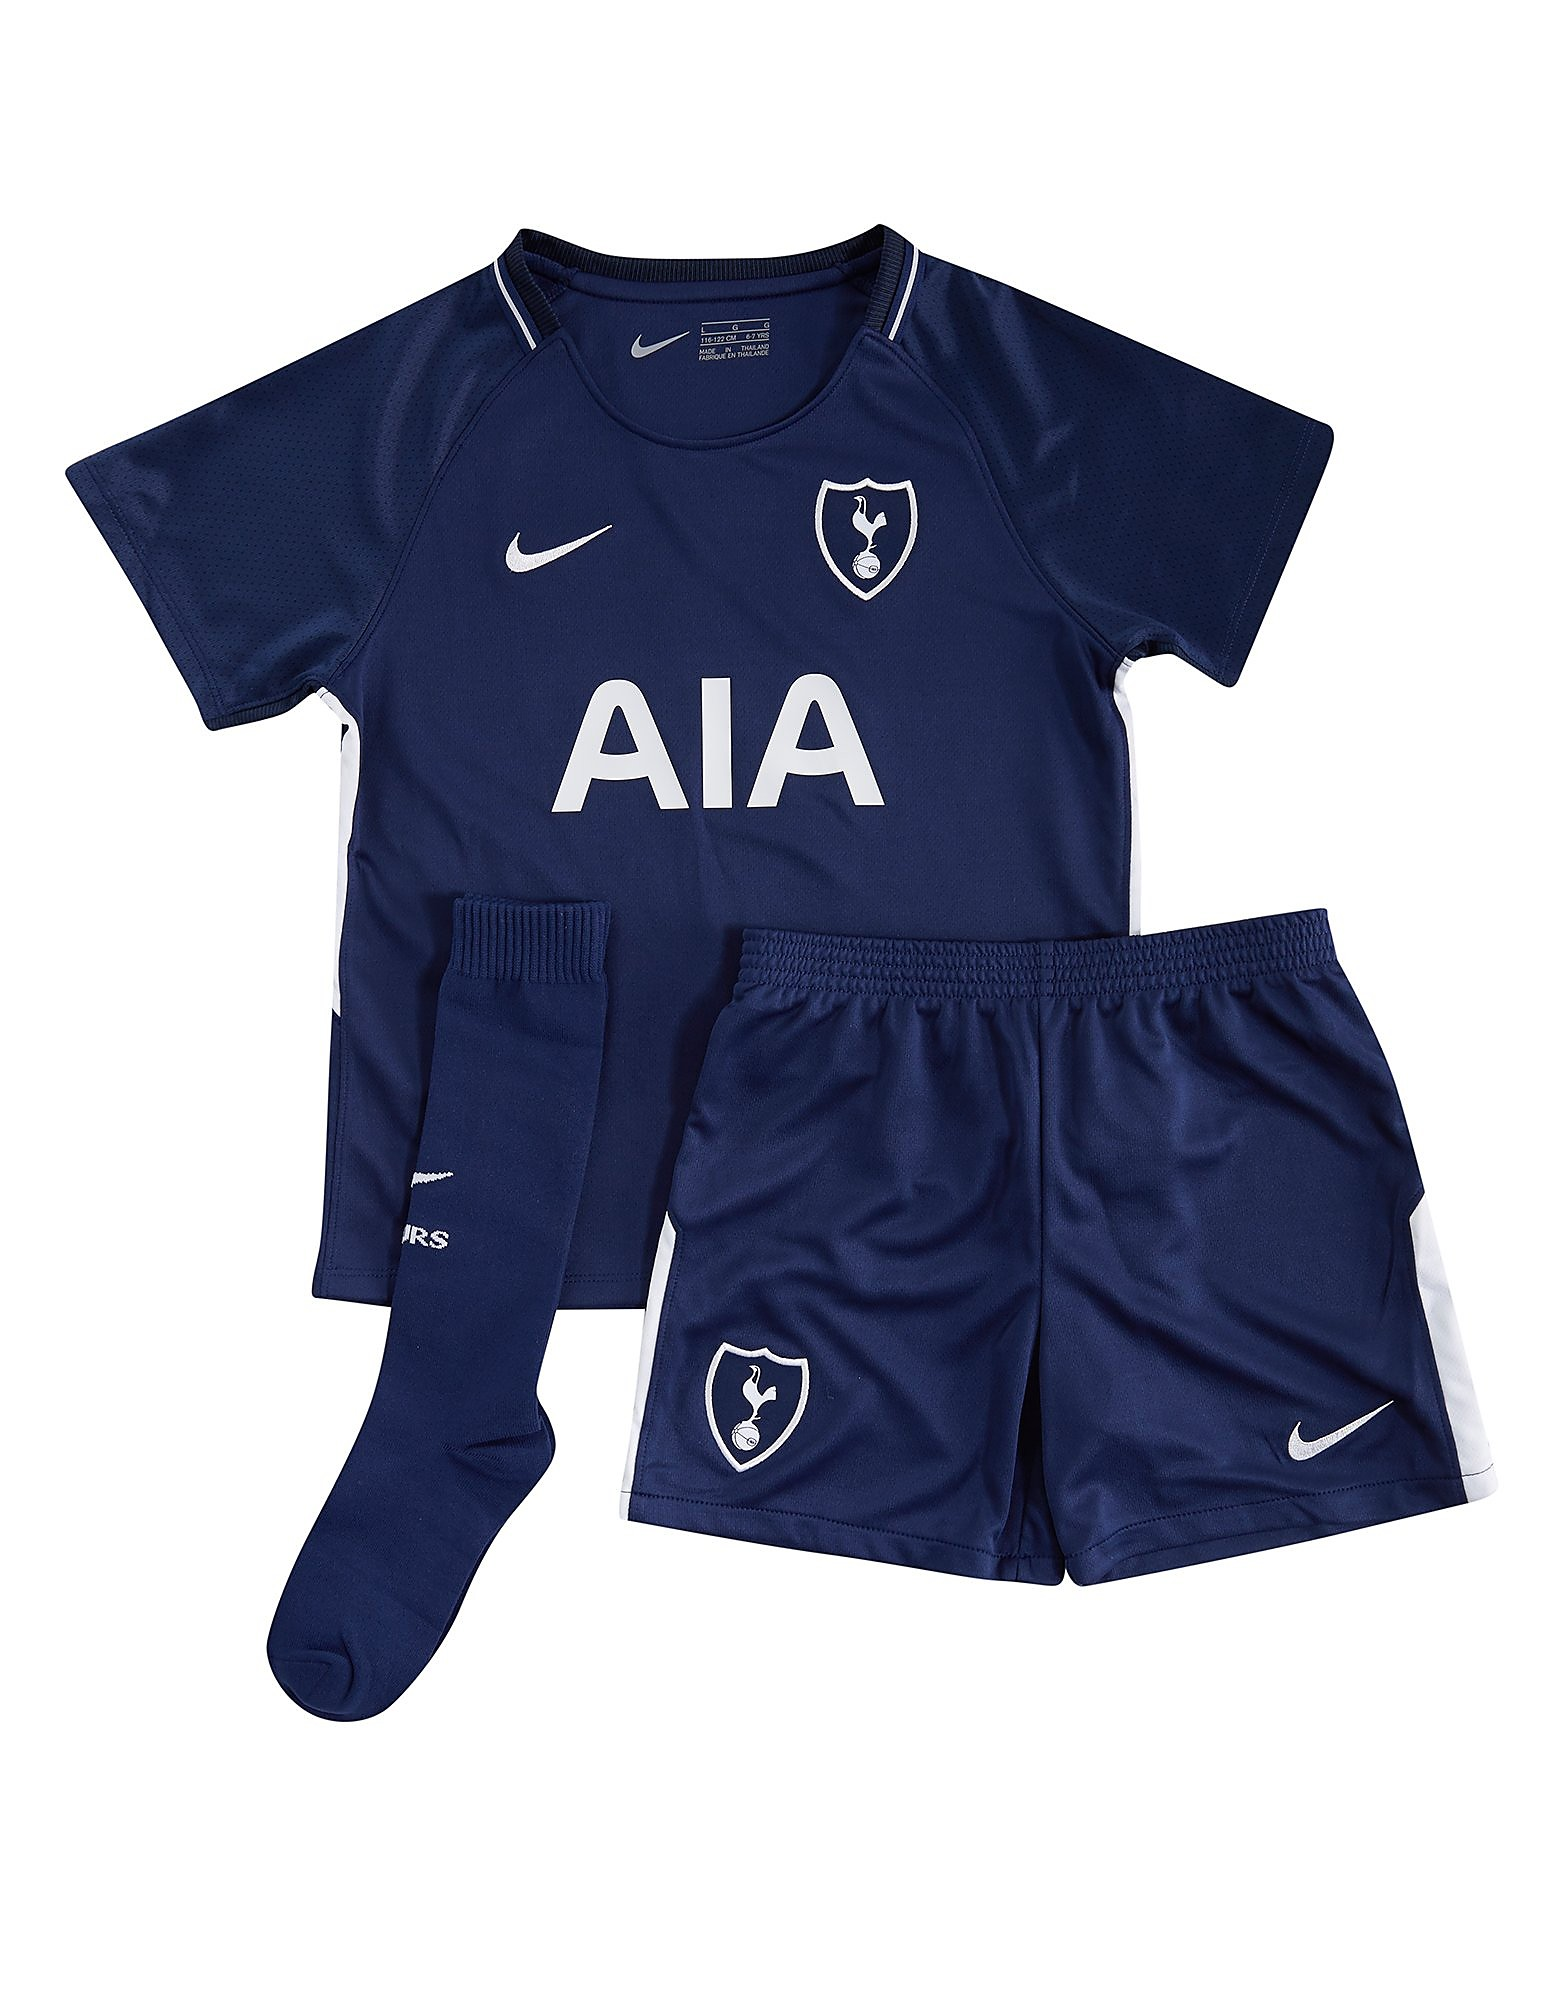 Nike Tottenham Hotspur 2017/18 Away Kit Children